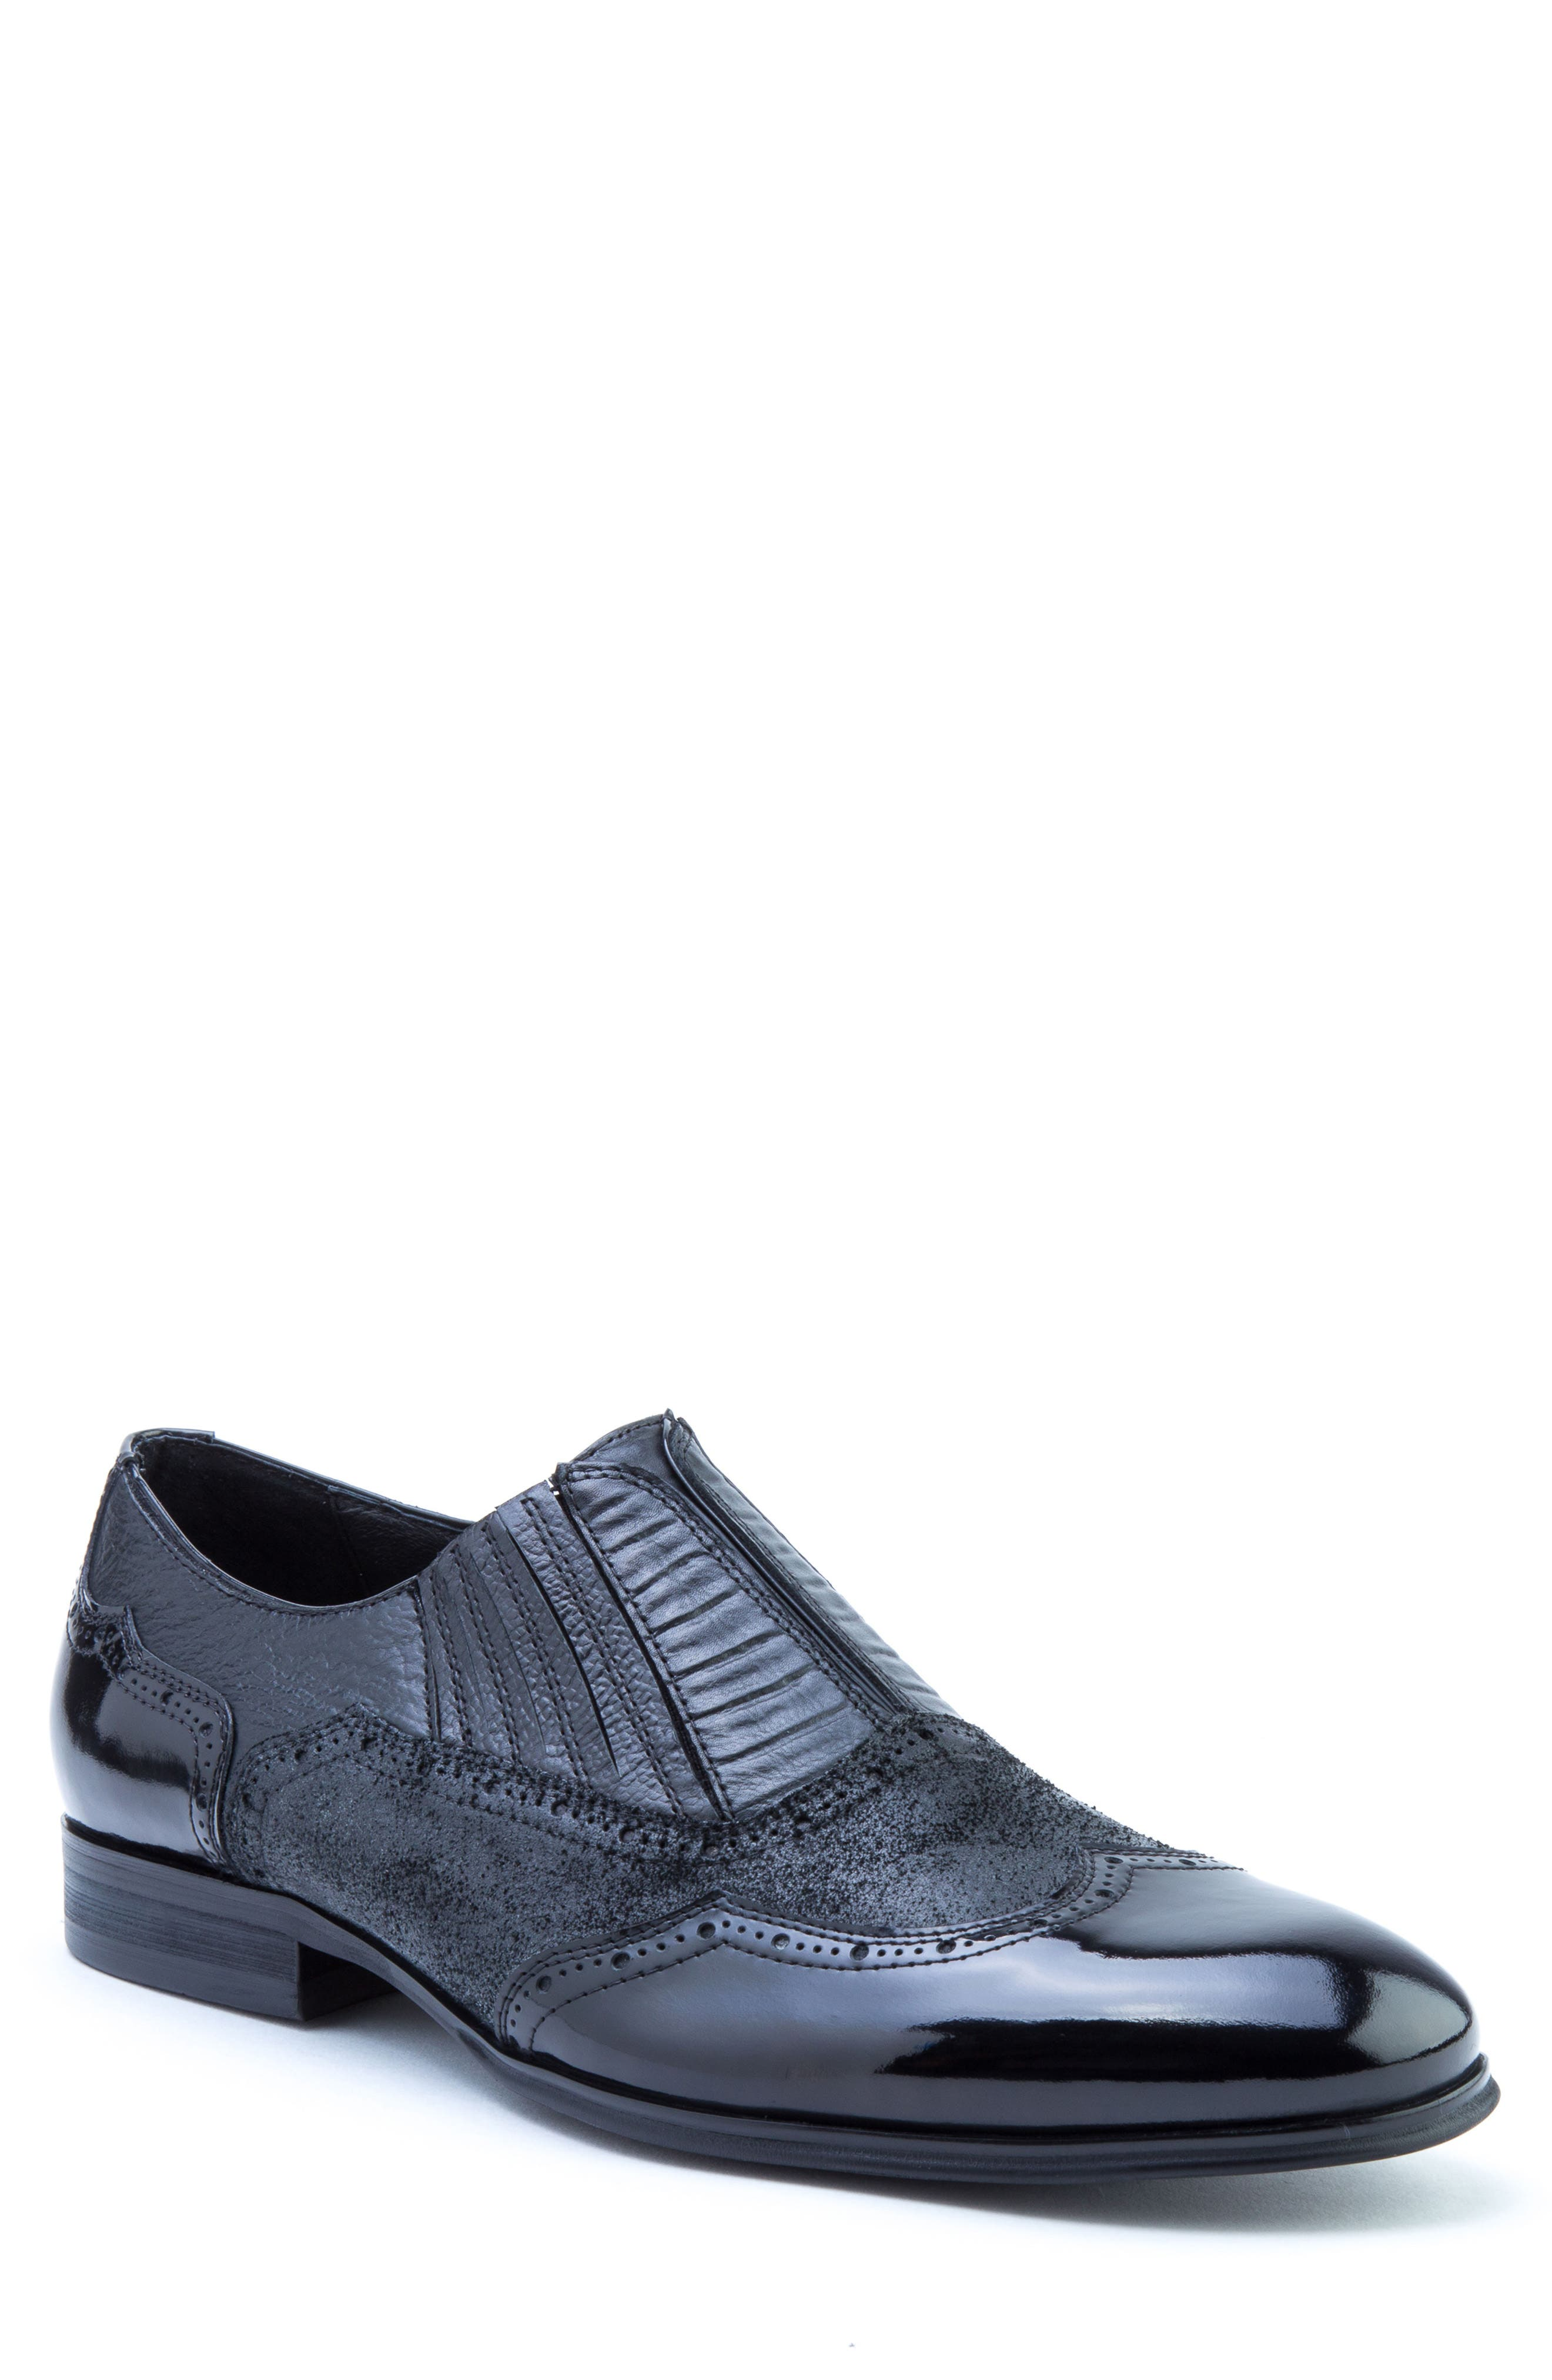 Warwick Wingtip,                             Main thumbnail 1, color,                             Black Leather